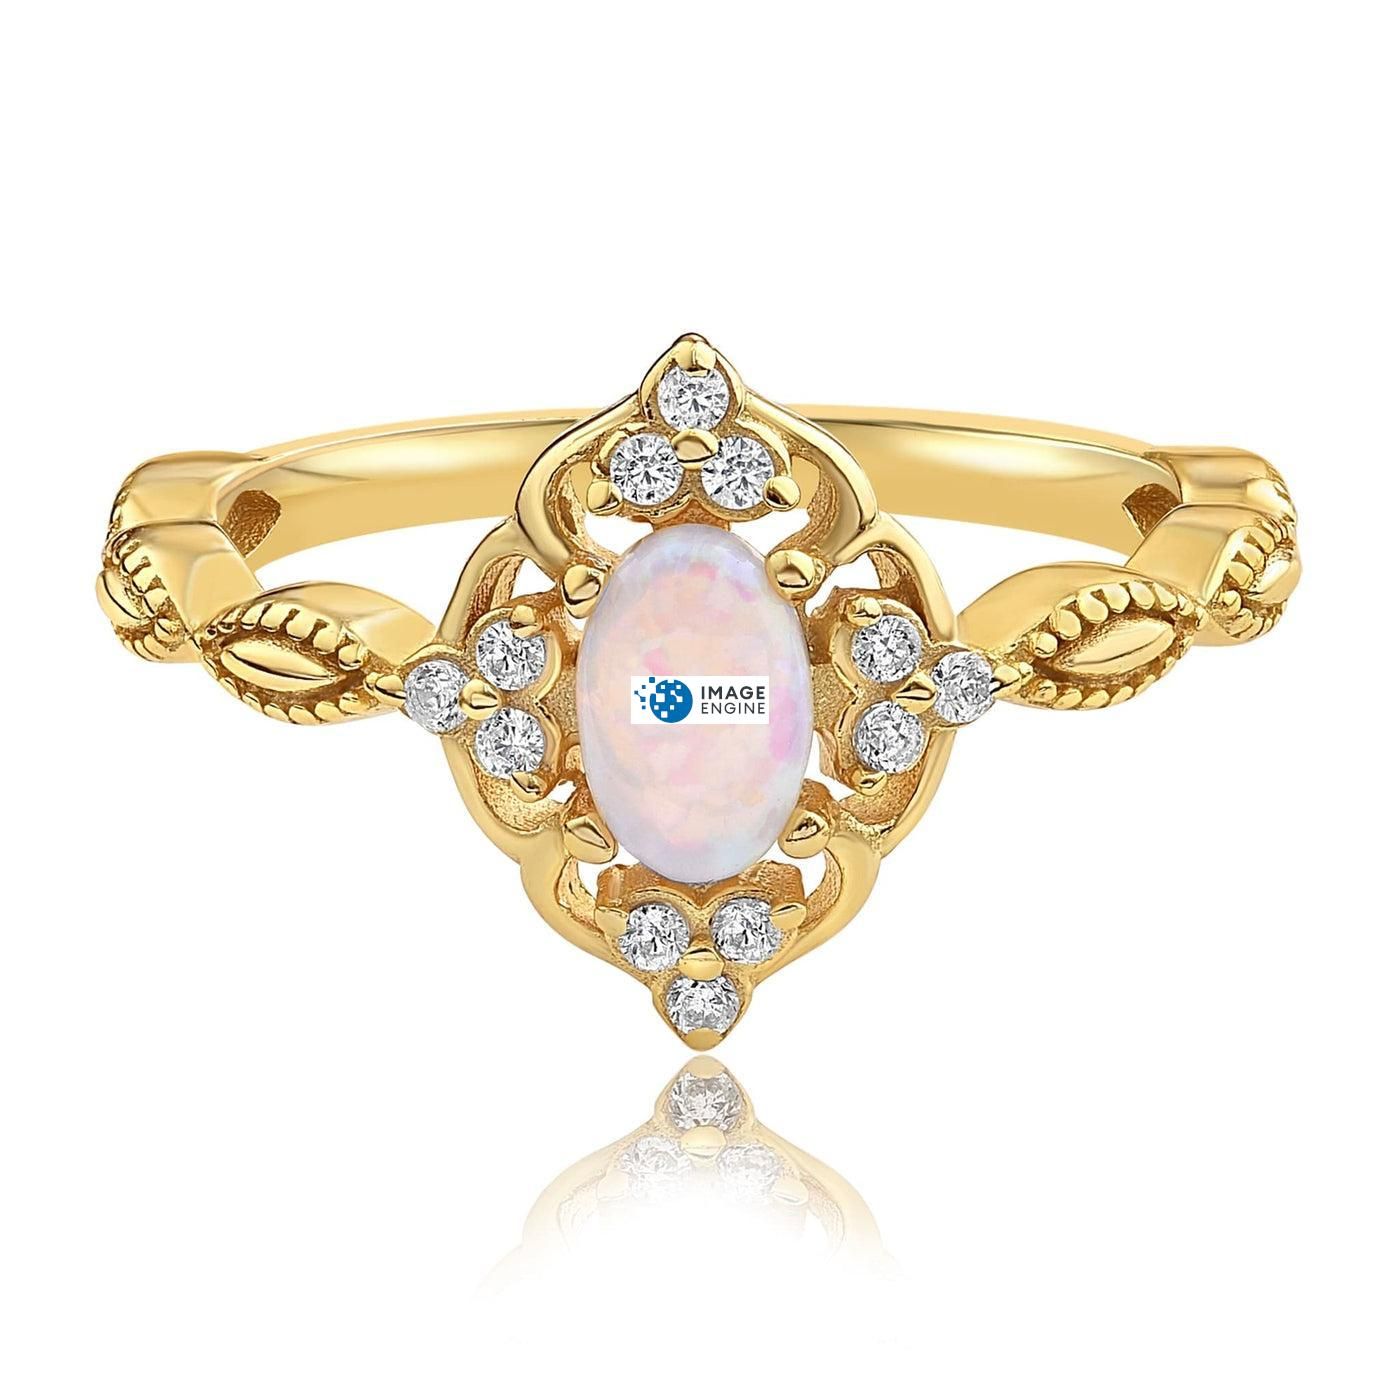 Blue Opal Carved Ring - Front View Facing Down - 18K Yellow Gold Vermeil